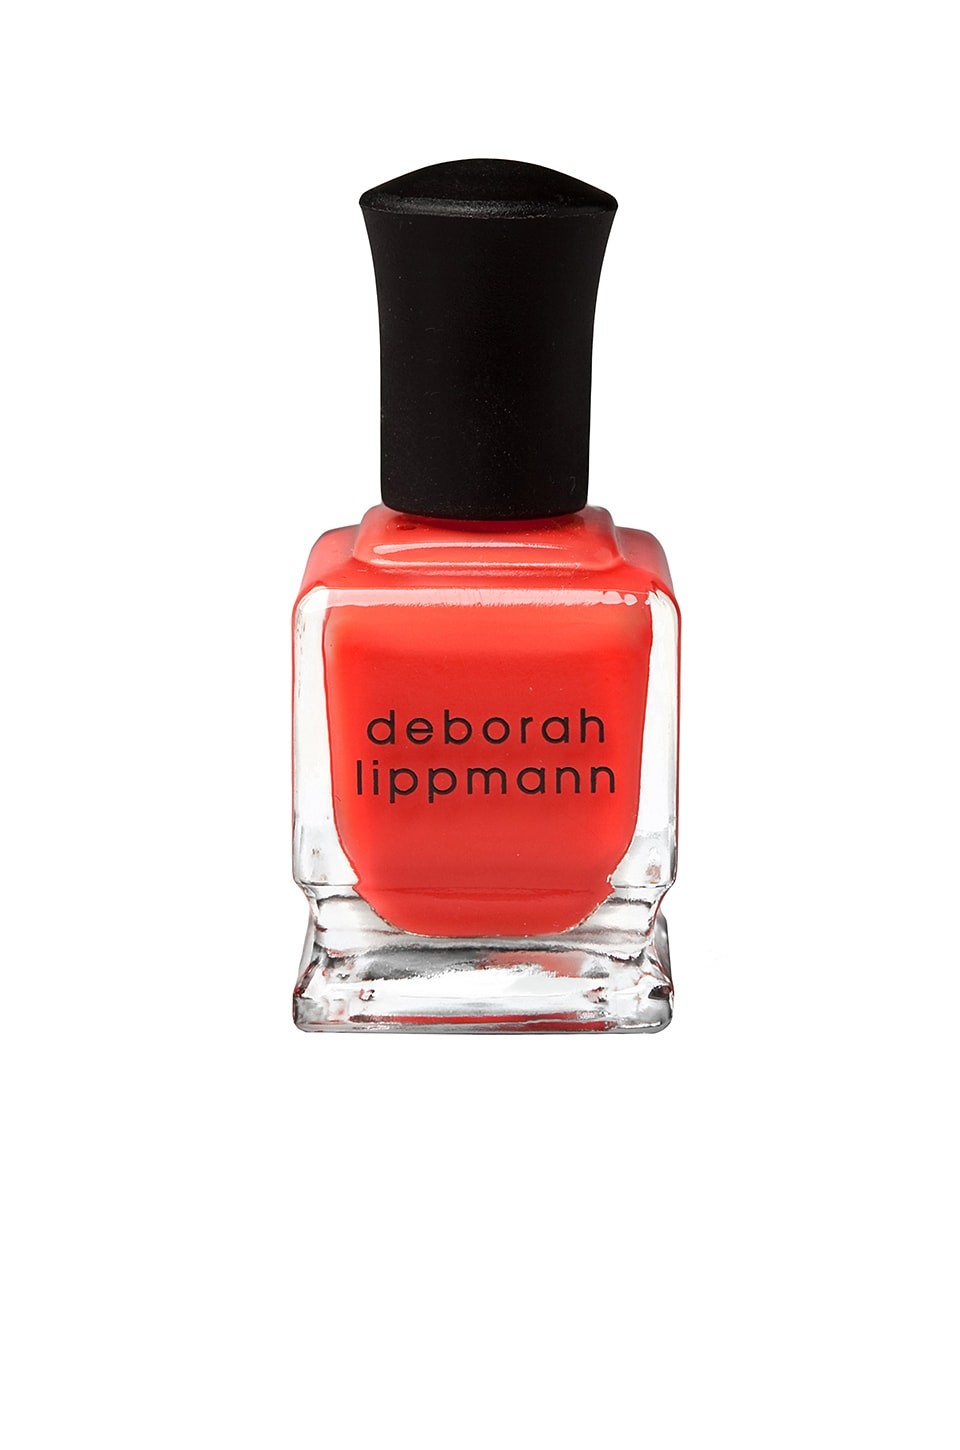 Deborah Lippmann Nail Lacquer in Girls Just Want to Have Fun